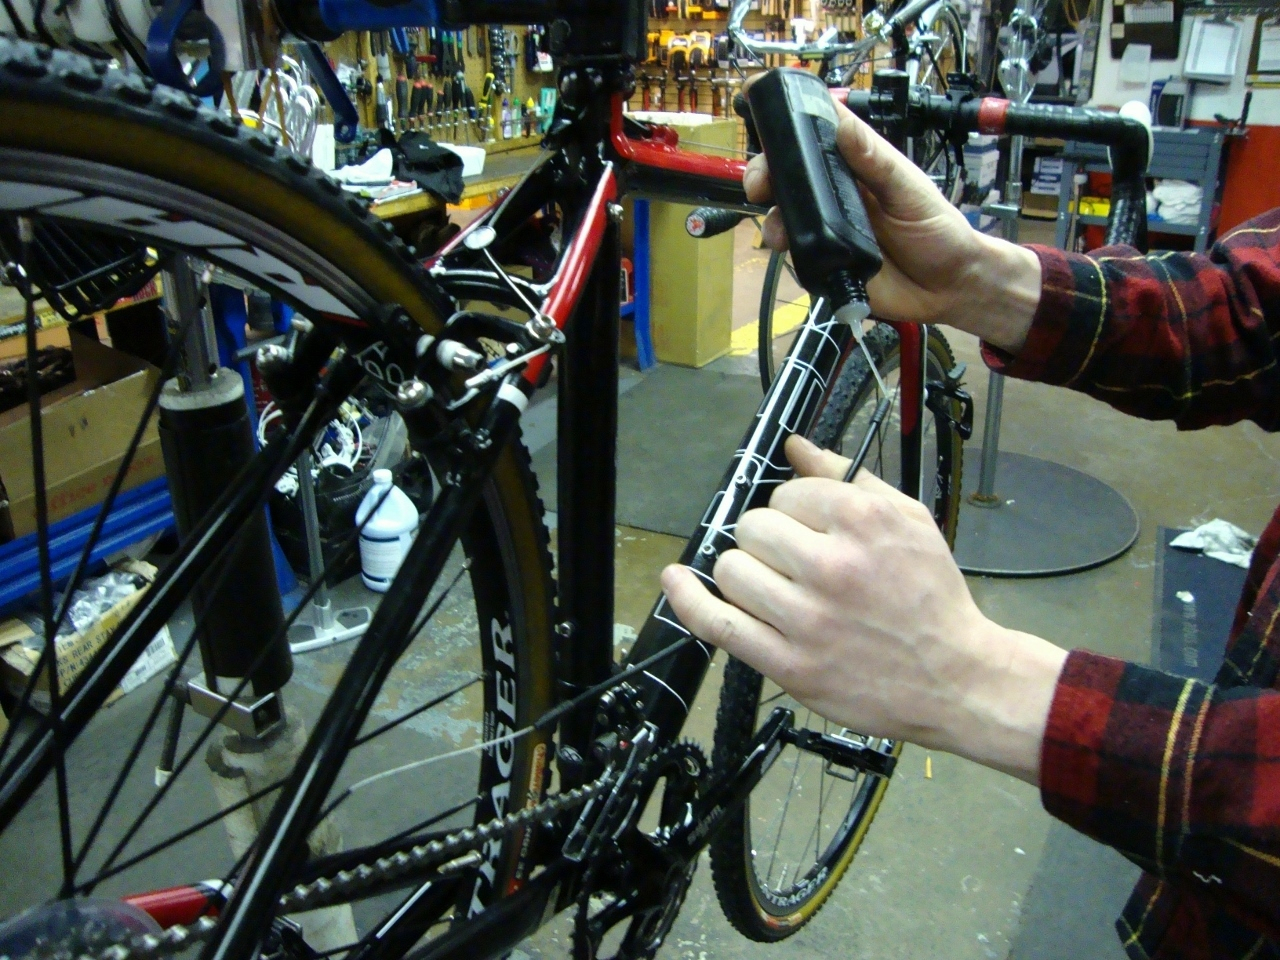 as part of the bike tune-up we ensure everything is properly lubricated